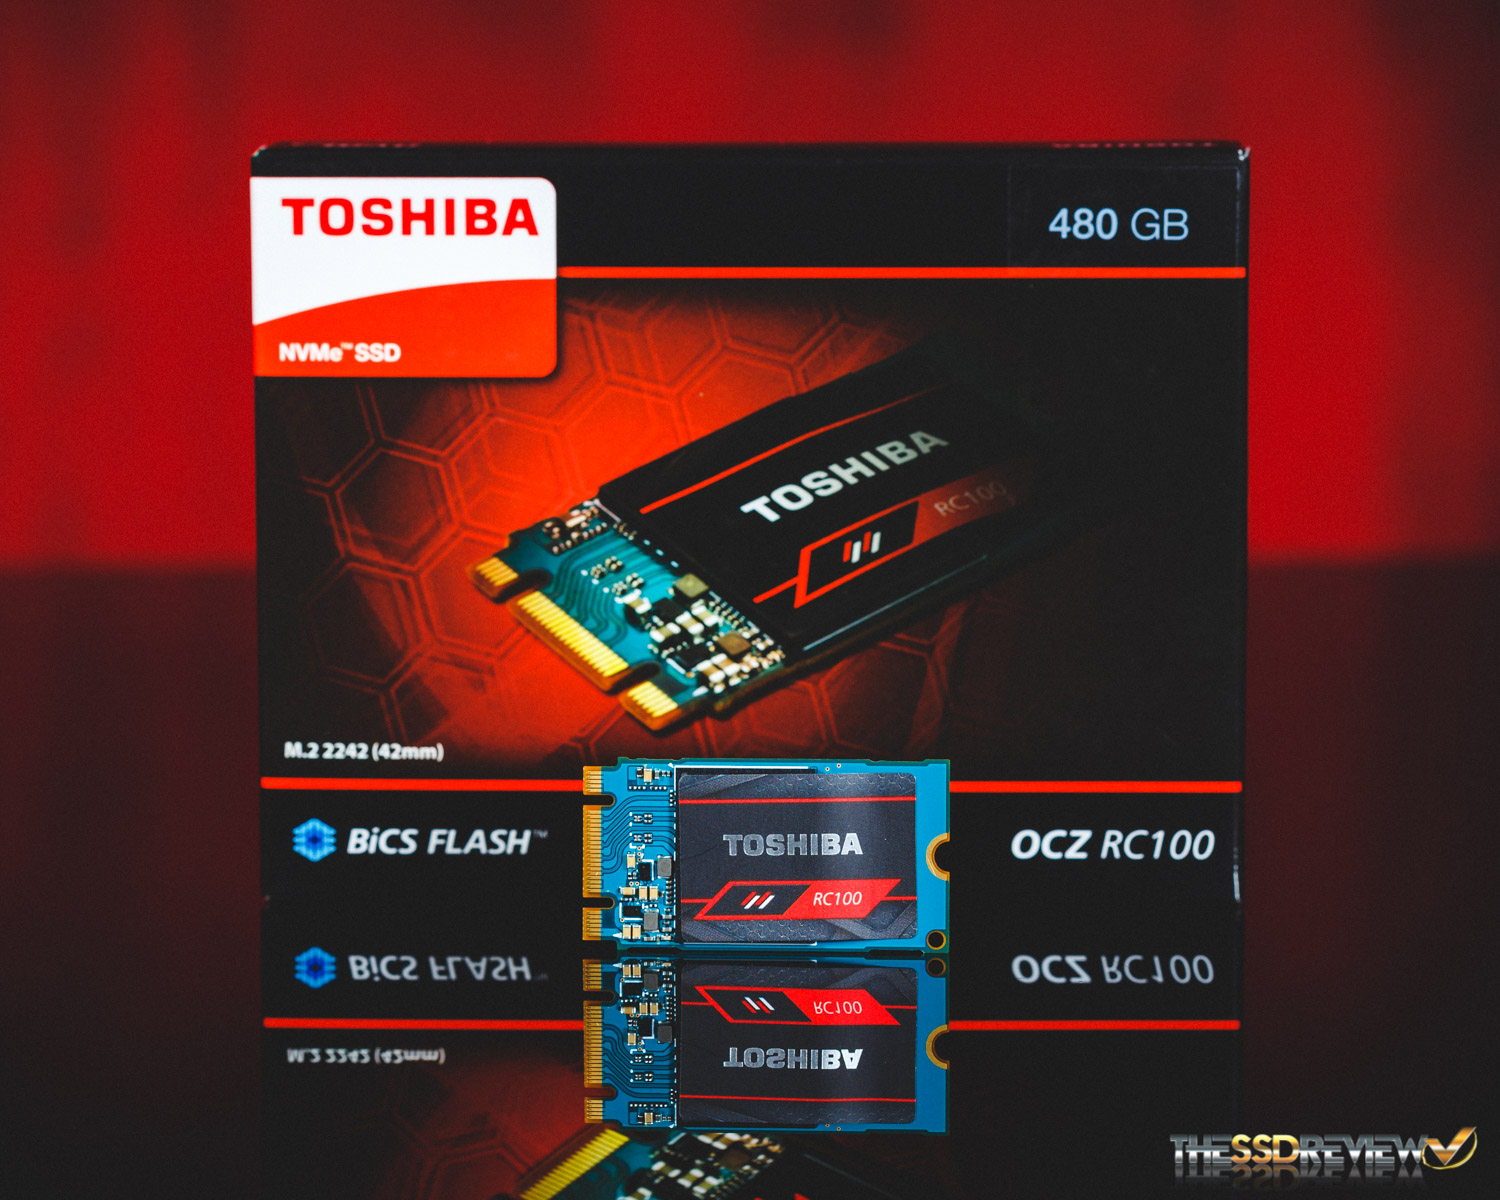 Toshiba Ocz Rc100 M2 Nvme Ssd Review 240gb 480gb Is This The Flash Disk 2 Gb Start Of A New Trend